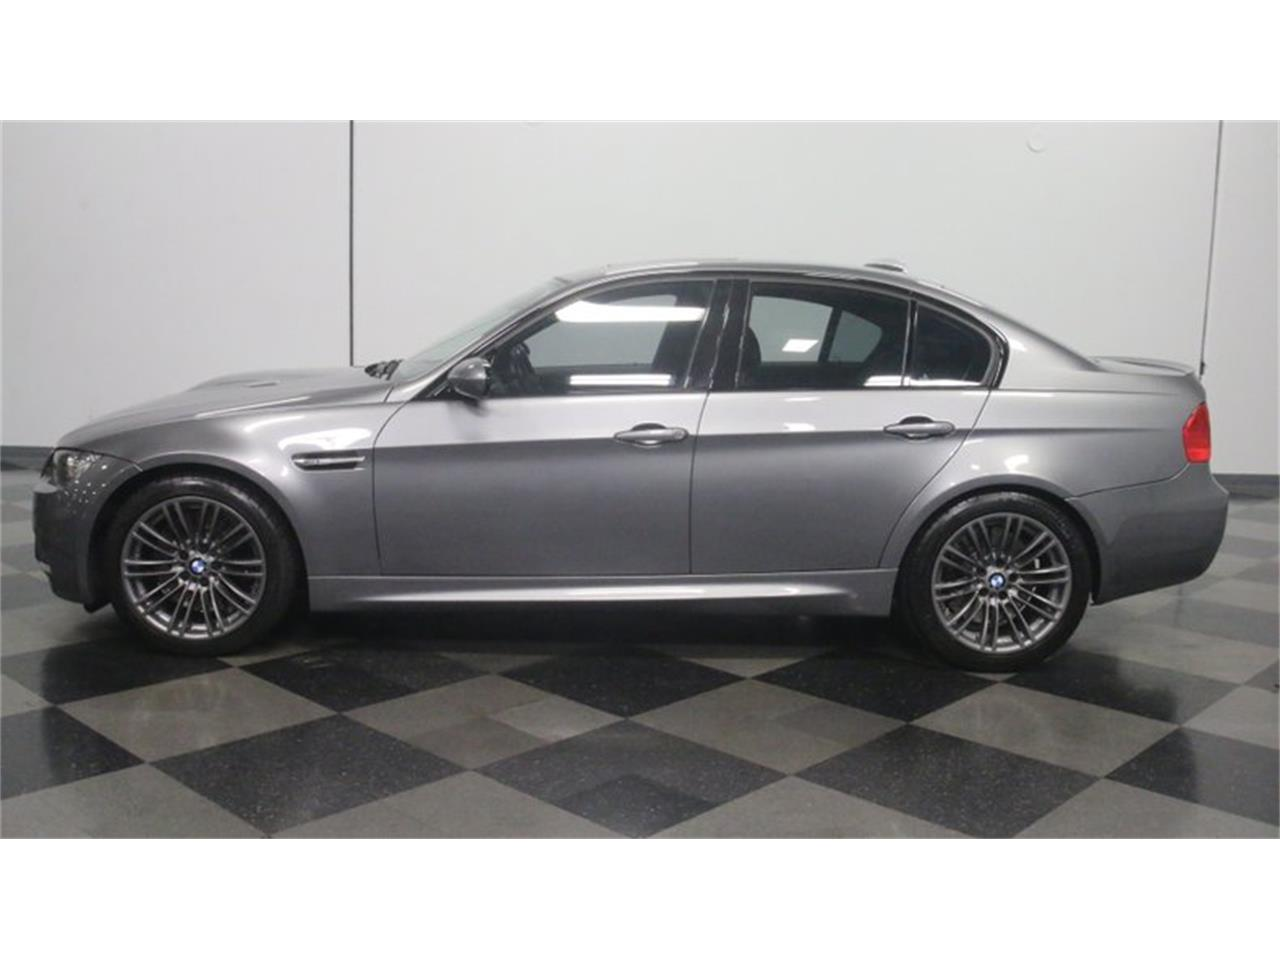 2010 BMW M3 for sale in Lithia Springs, GA – photo 7